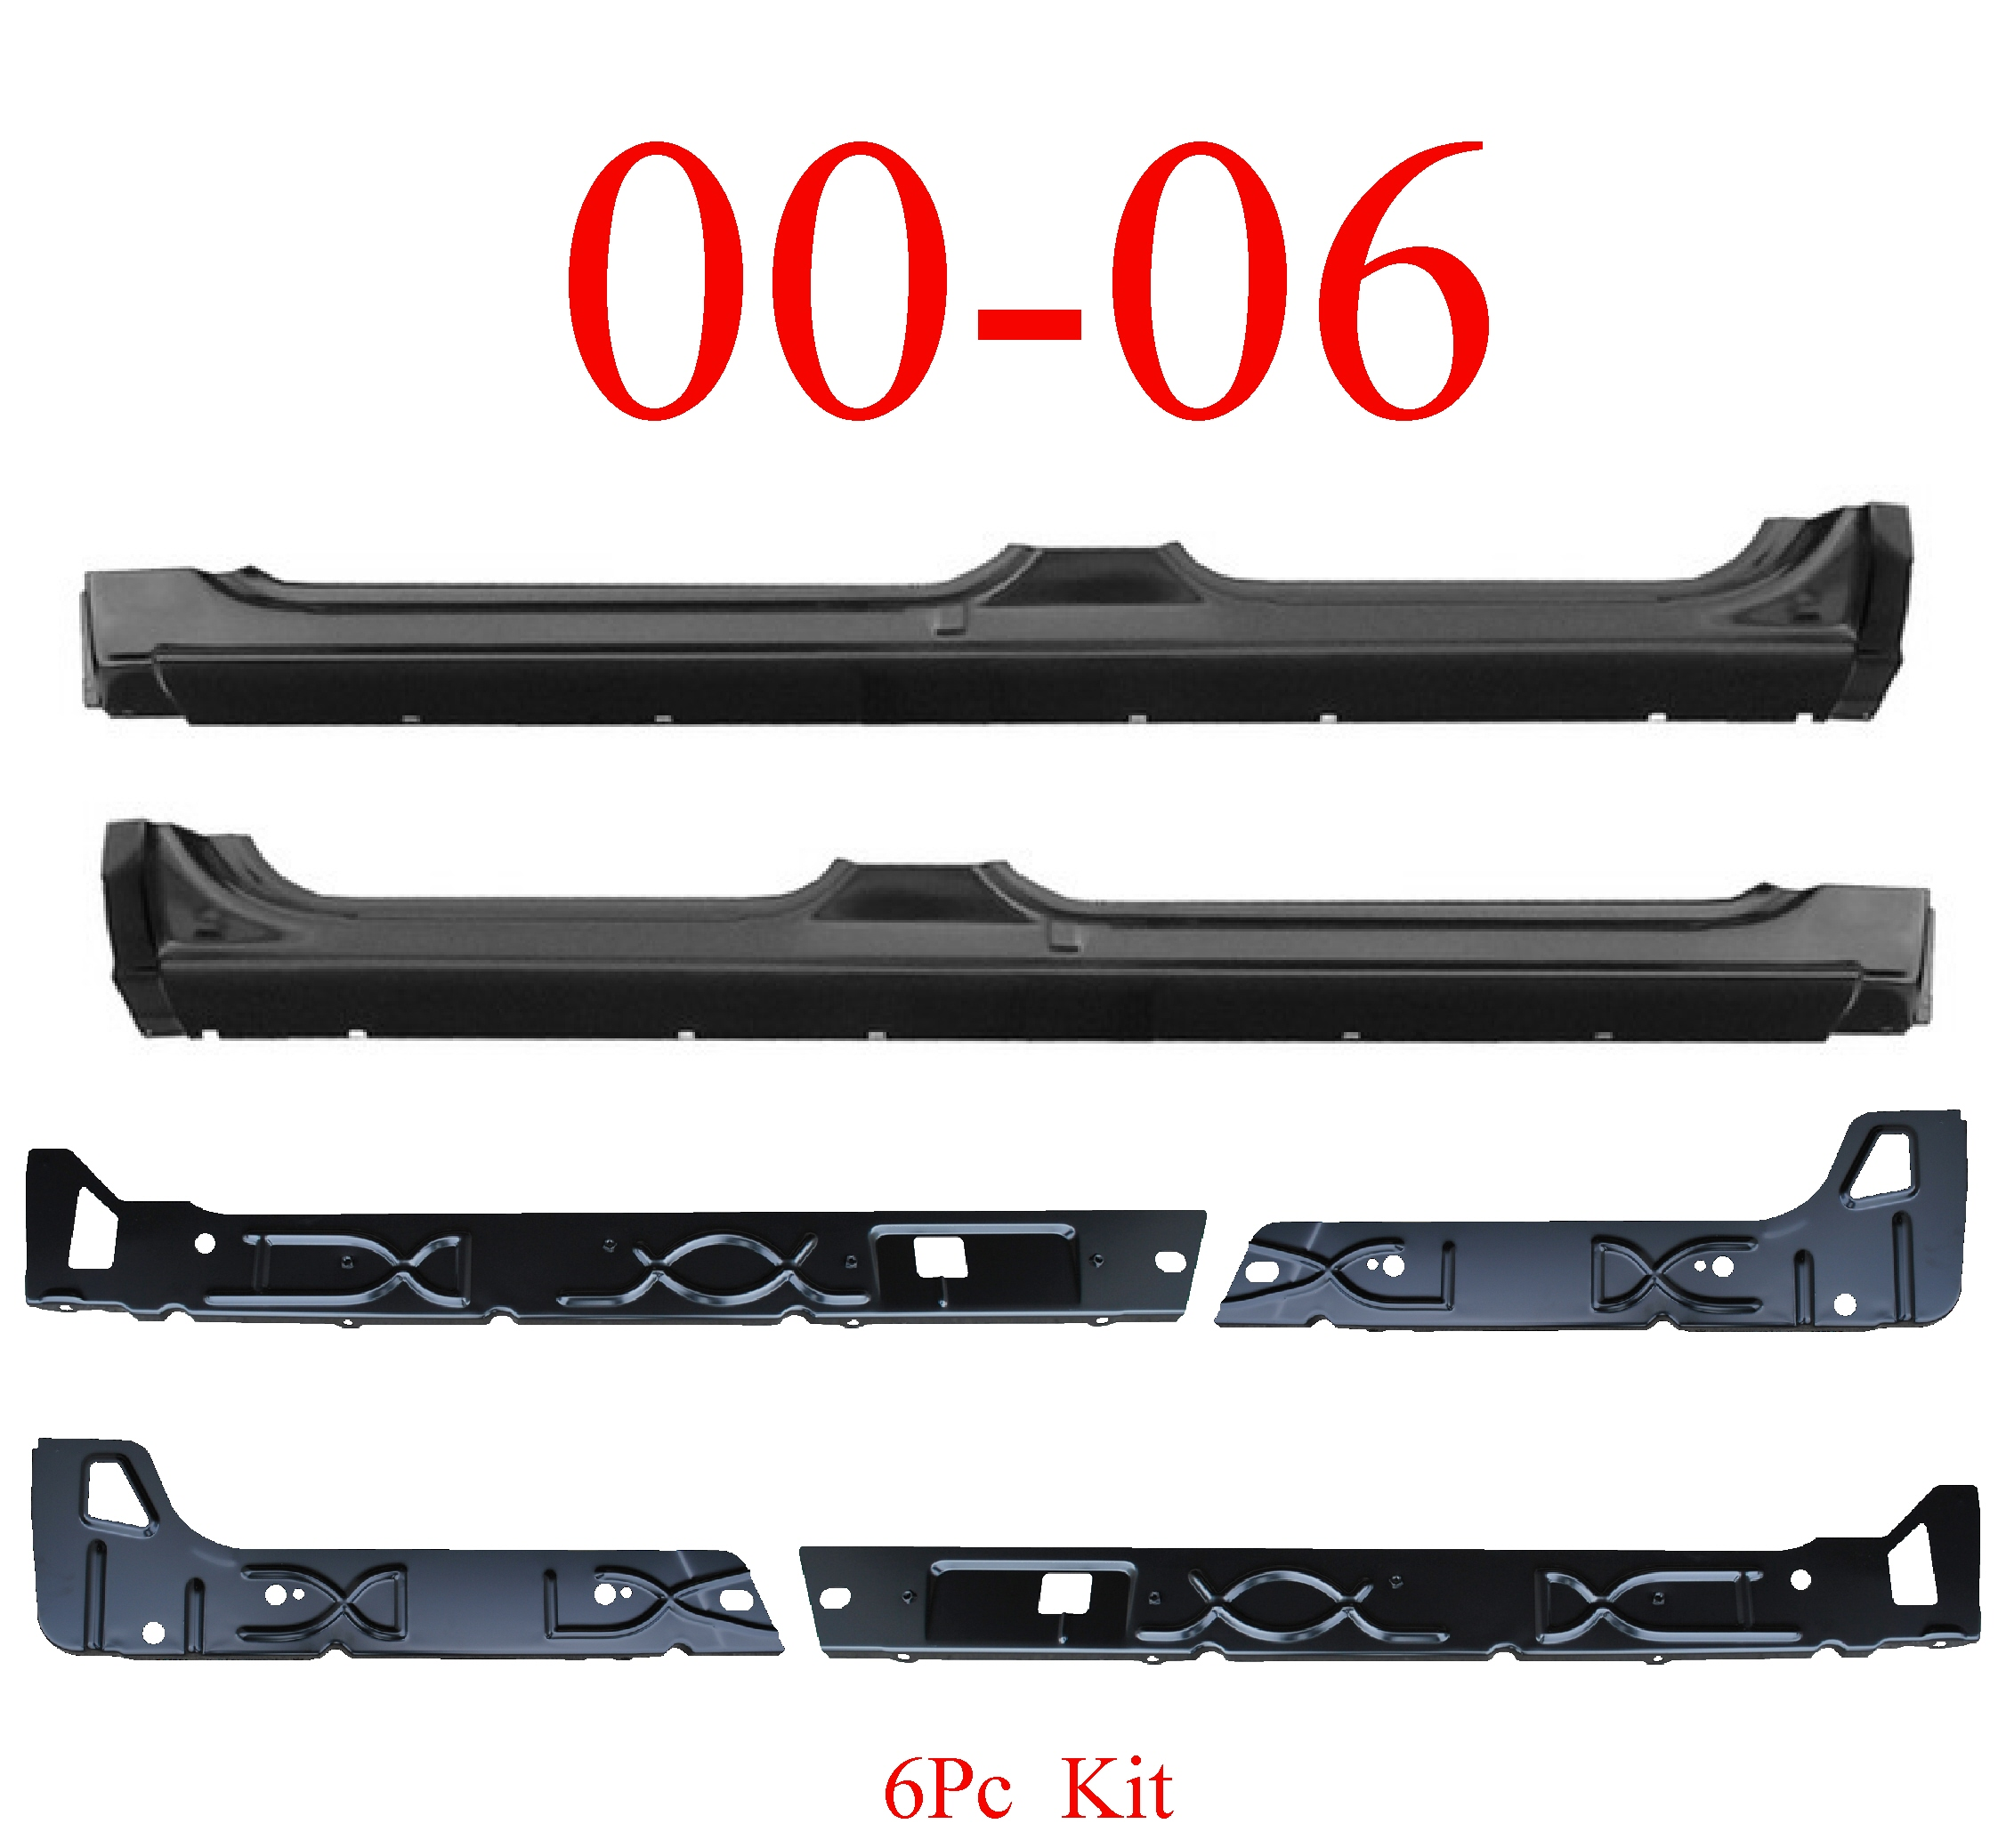 00-06 Chevy SUV 6Pc Inner & Outer Extended Rocker Panel